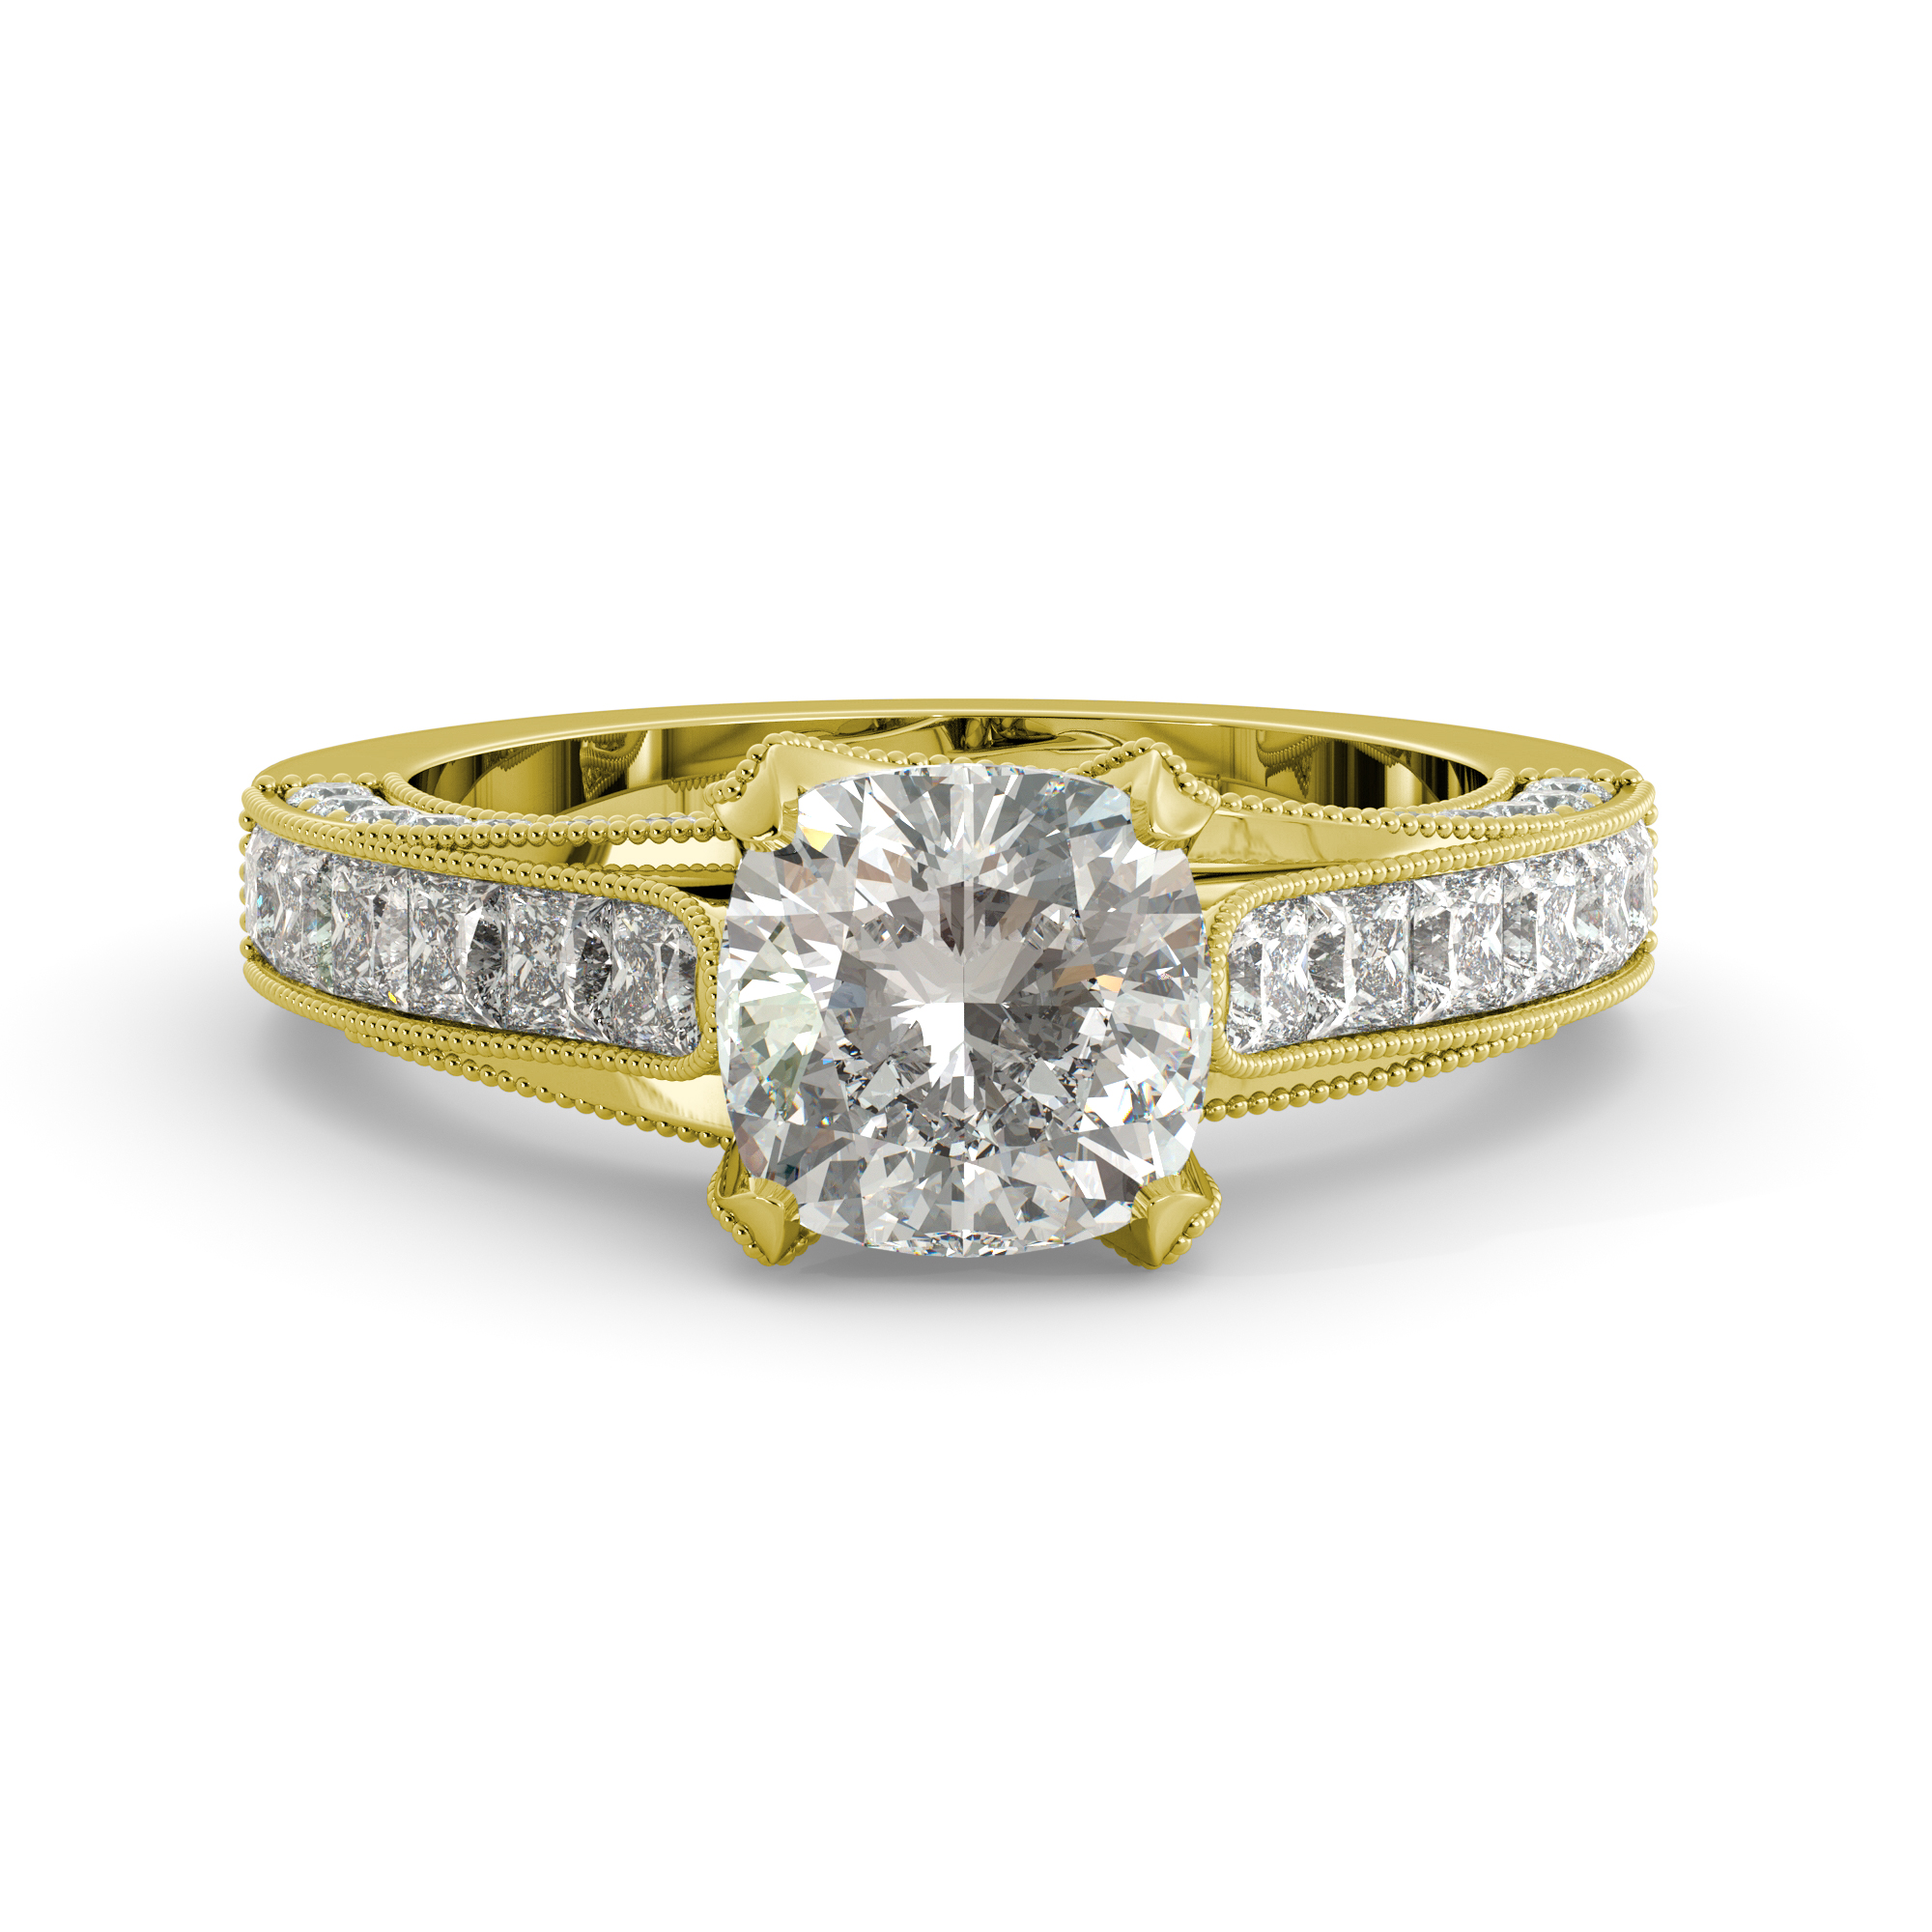 3.65 dwt Cushion One Moissanite & Round Princess Diamond Engagement Ring 18K Yellow Gold by J&H Jewelers